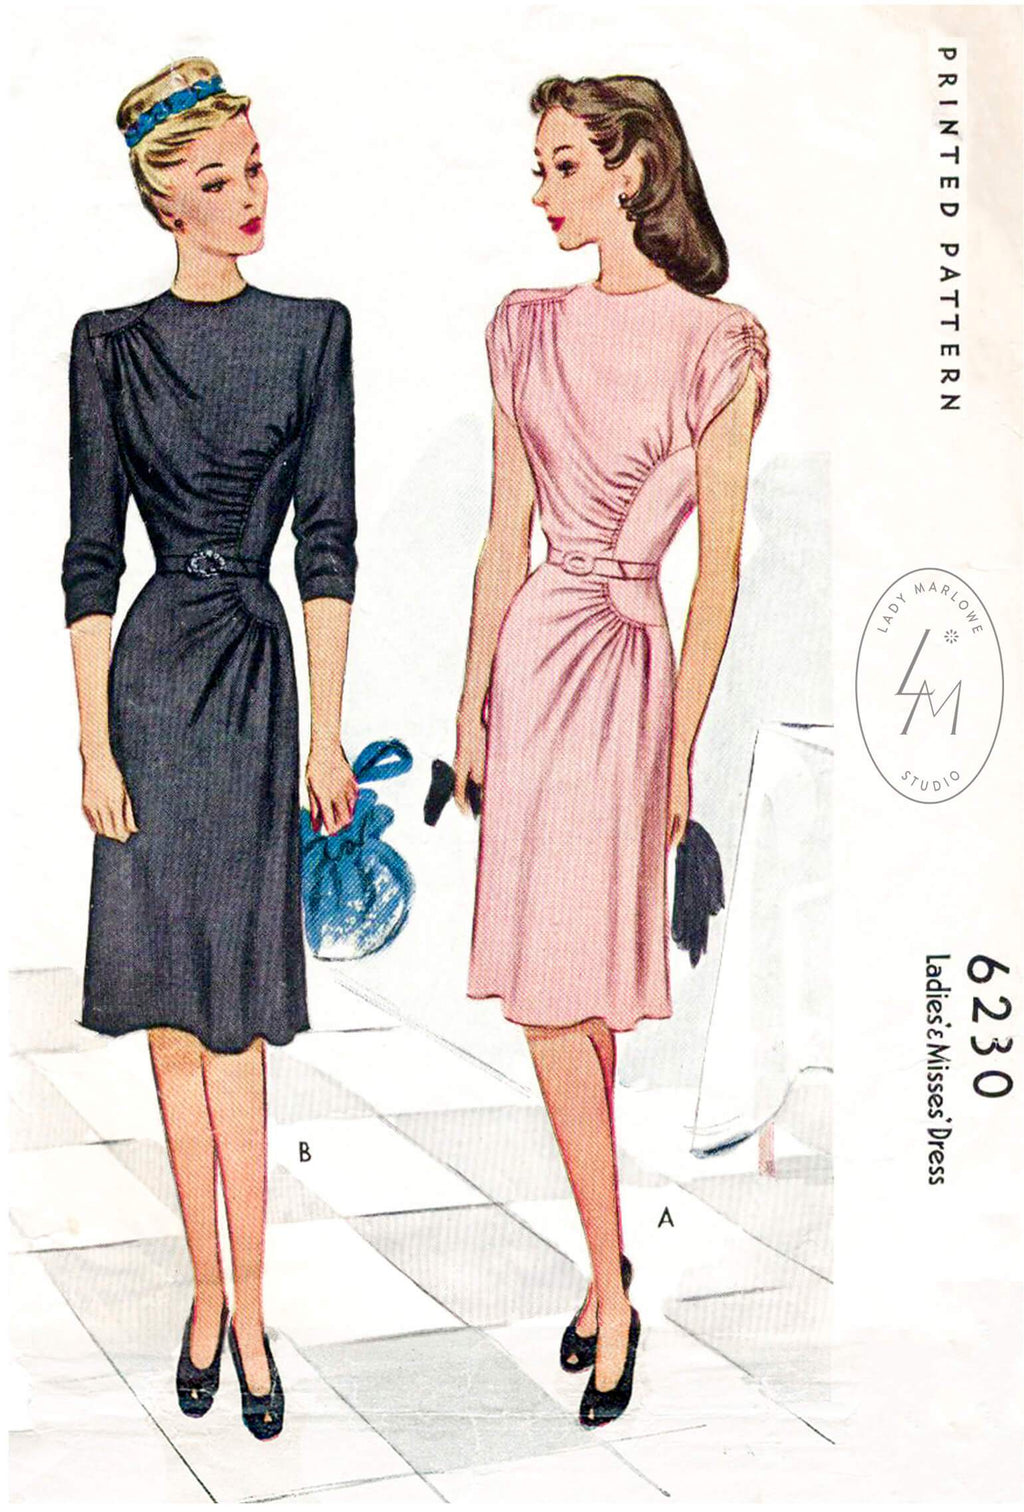 McCall 6230 1940s dress vintage sewing pattern reproduction